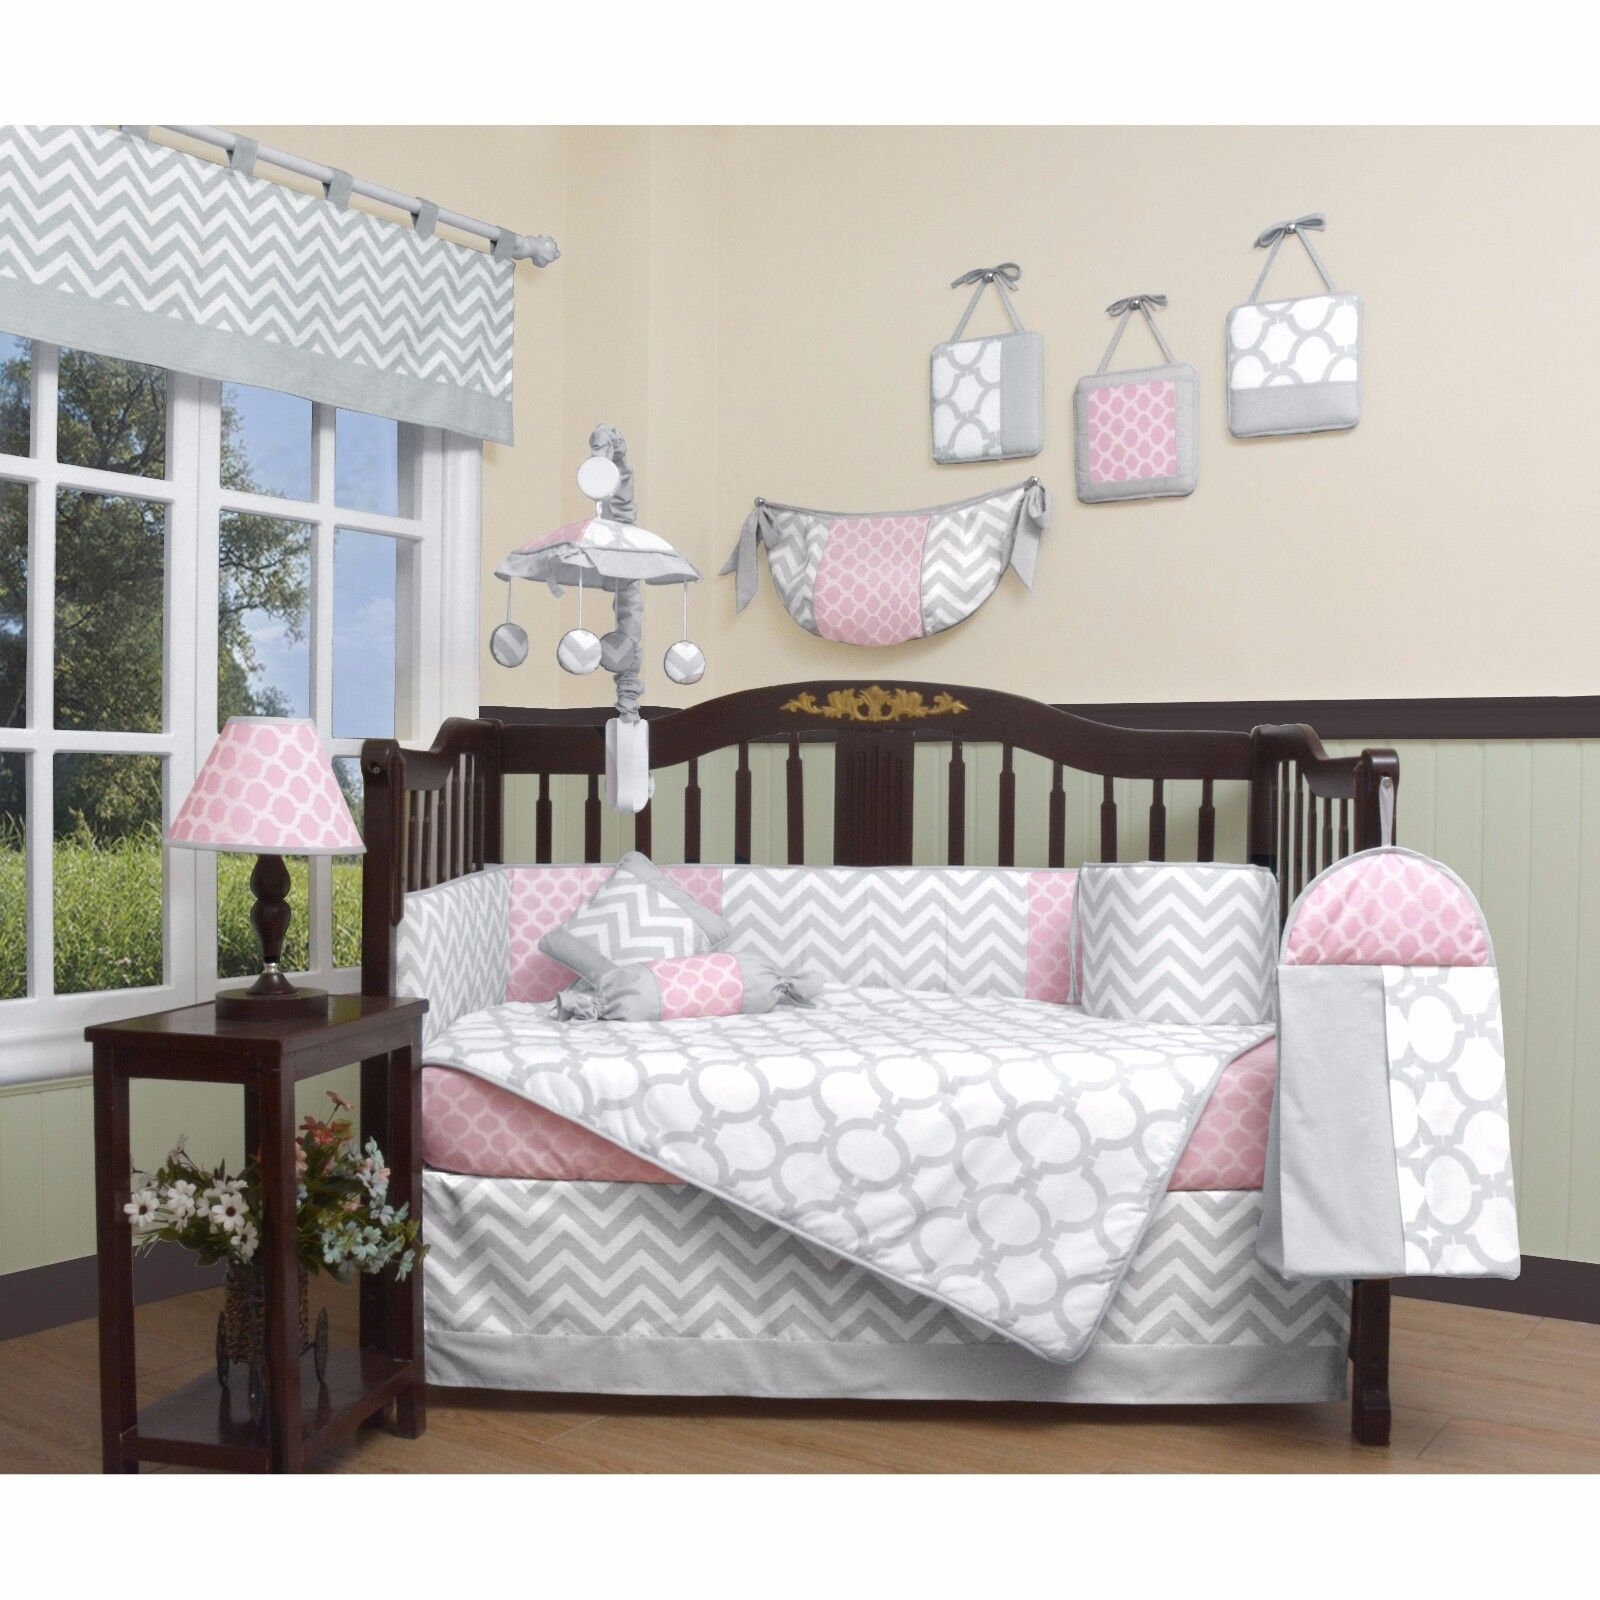 Baby fashion and bedding 3